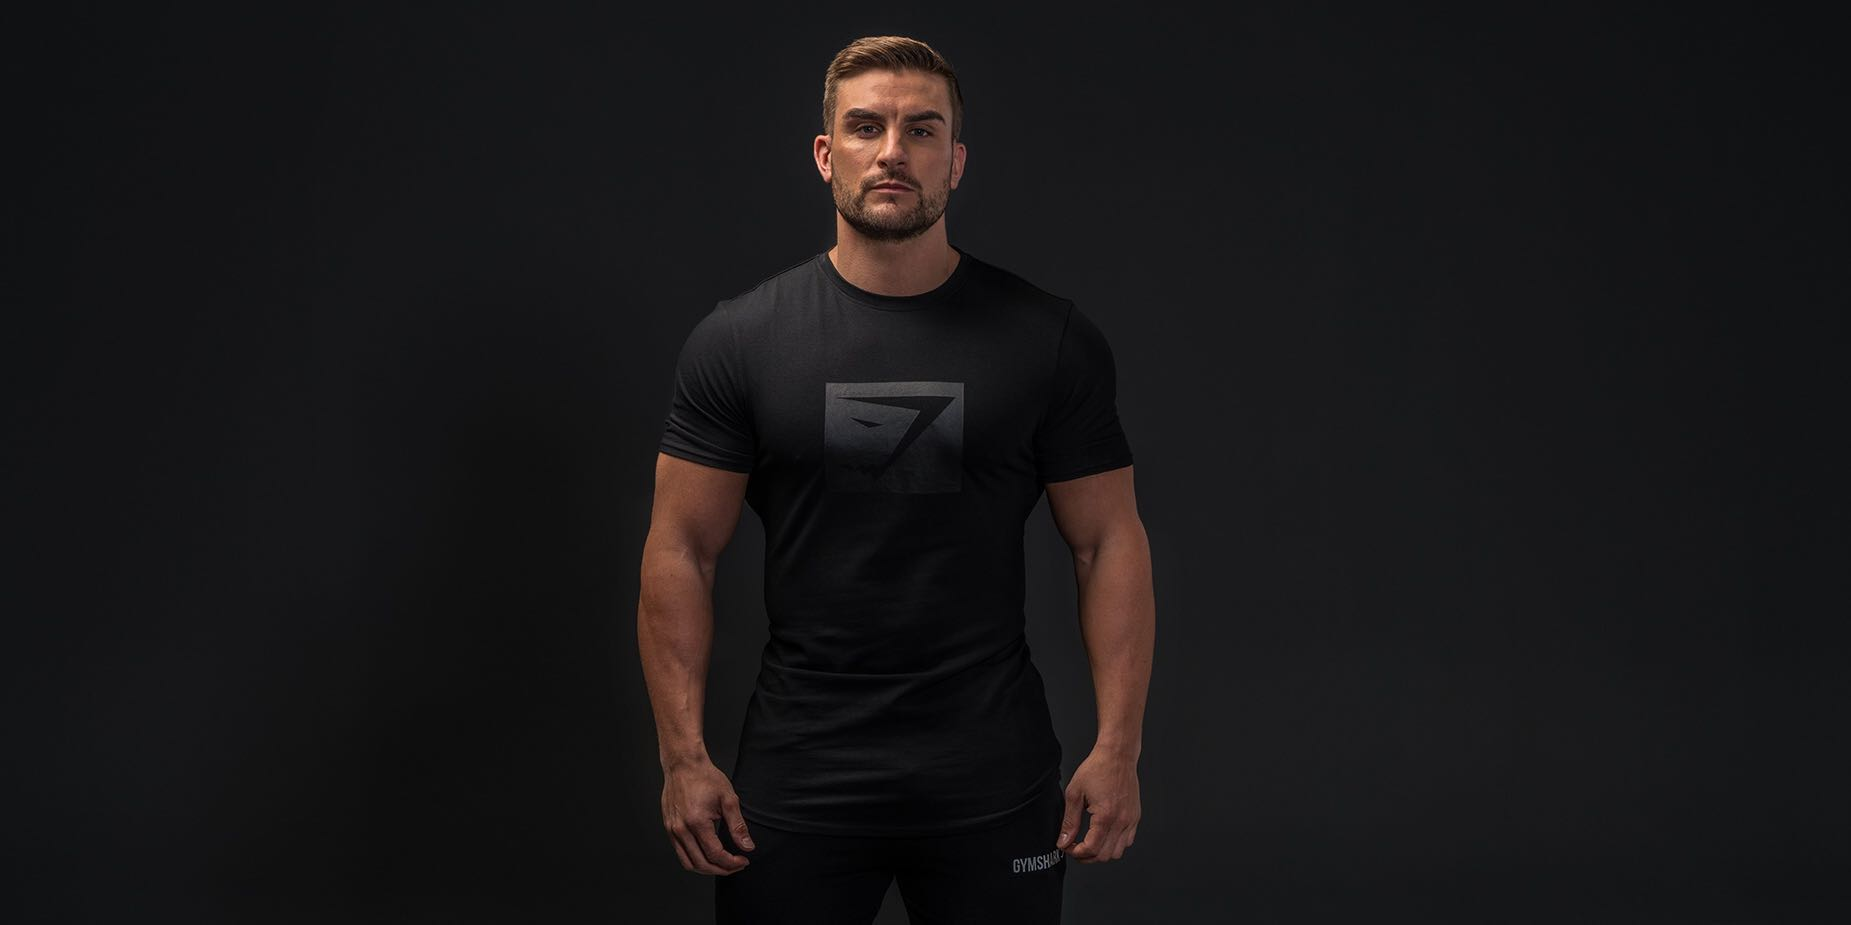 4b793b32c Gymshark Blackout T-Shirt (Black Friday Exclusive), Men's Fashion, Clothes,  Tops on Carousell